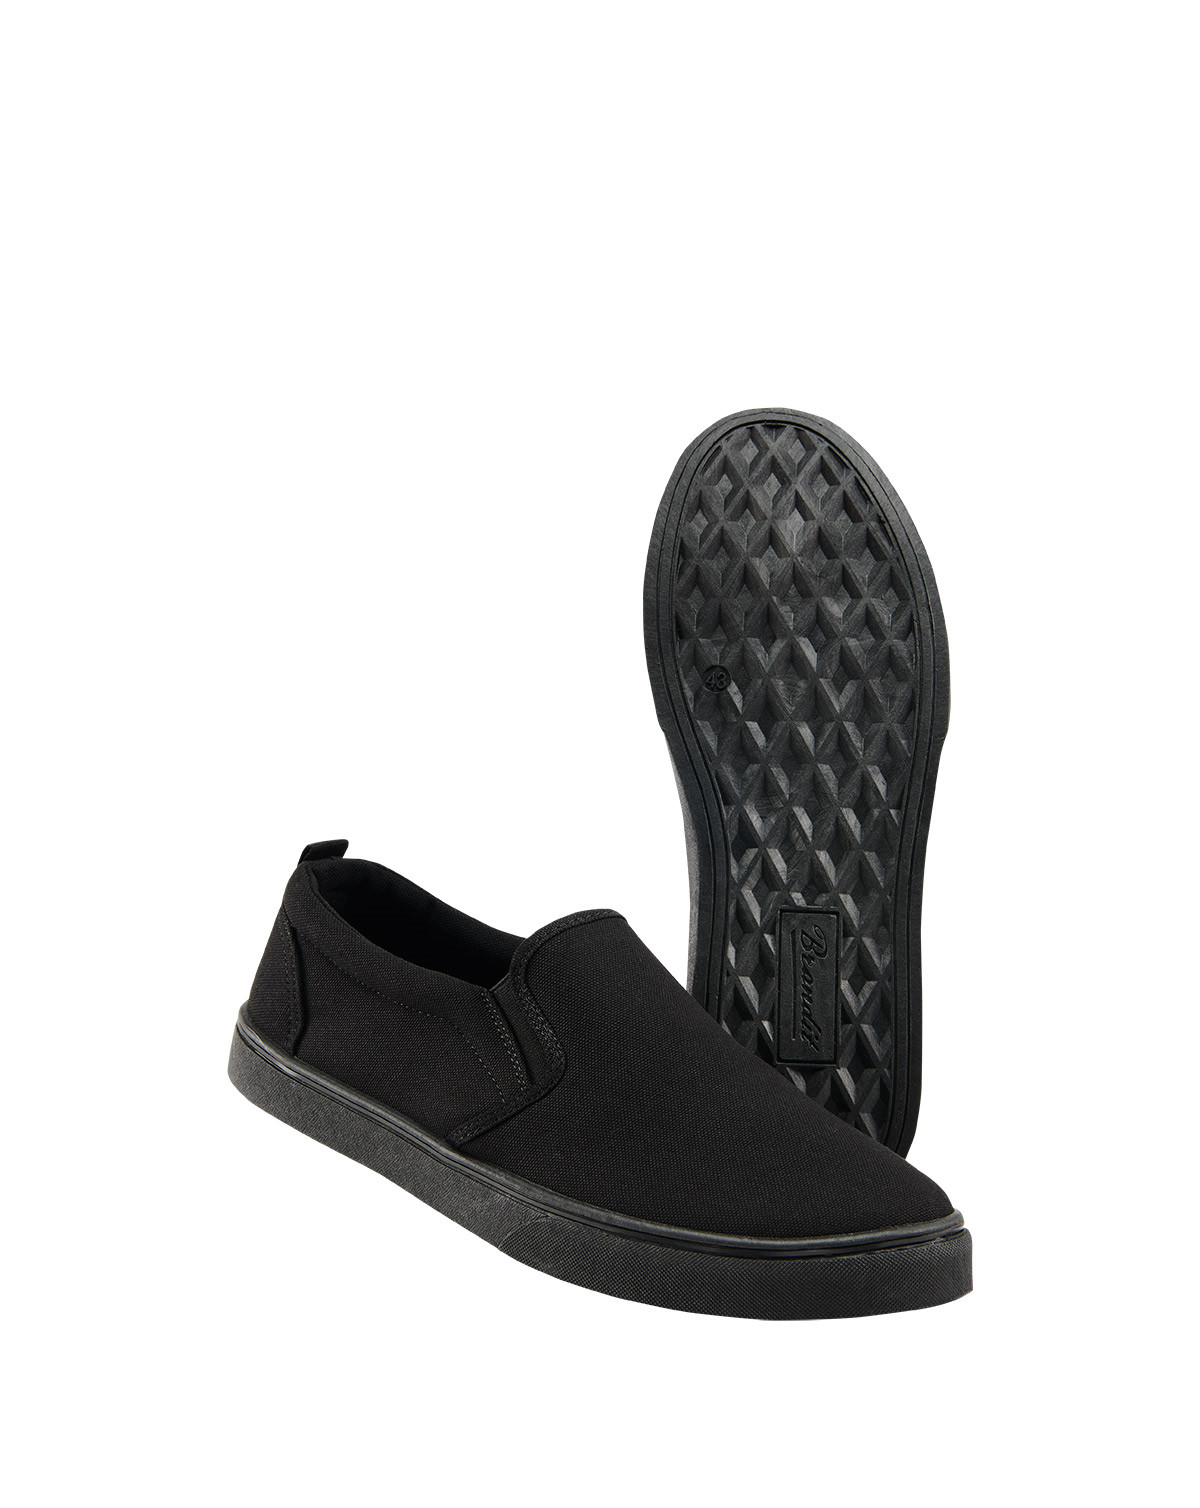 Image of   Brandit Southampton Slip On Sneaker (Sort, 36 EU / 3 UK)